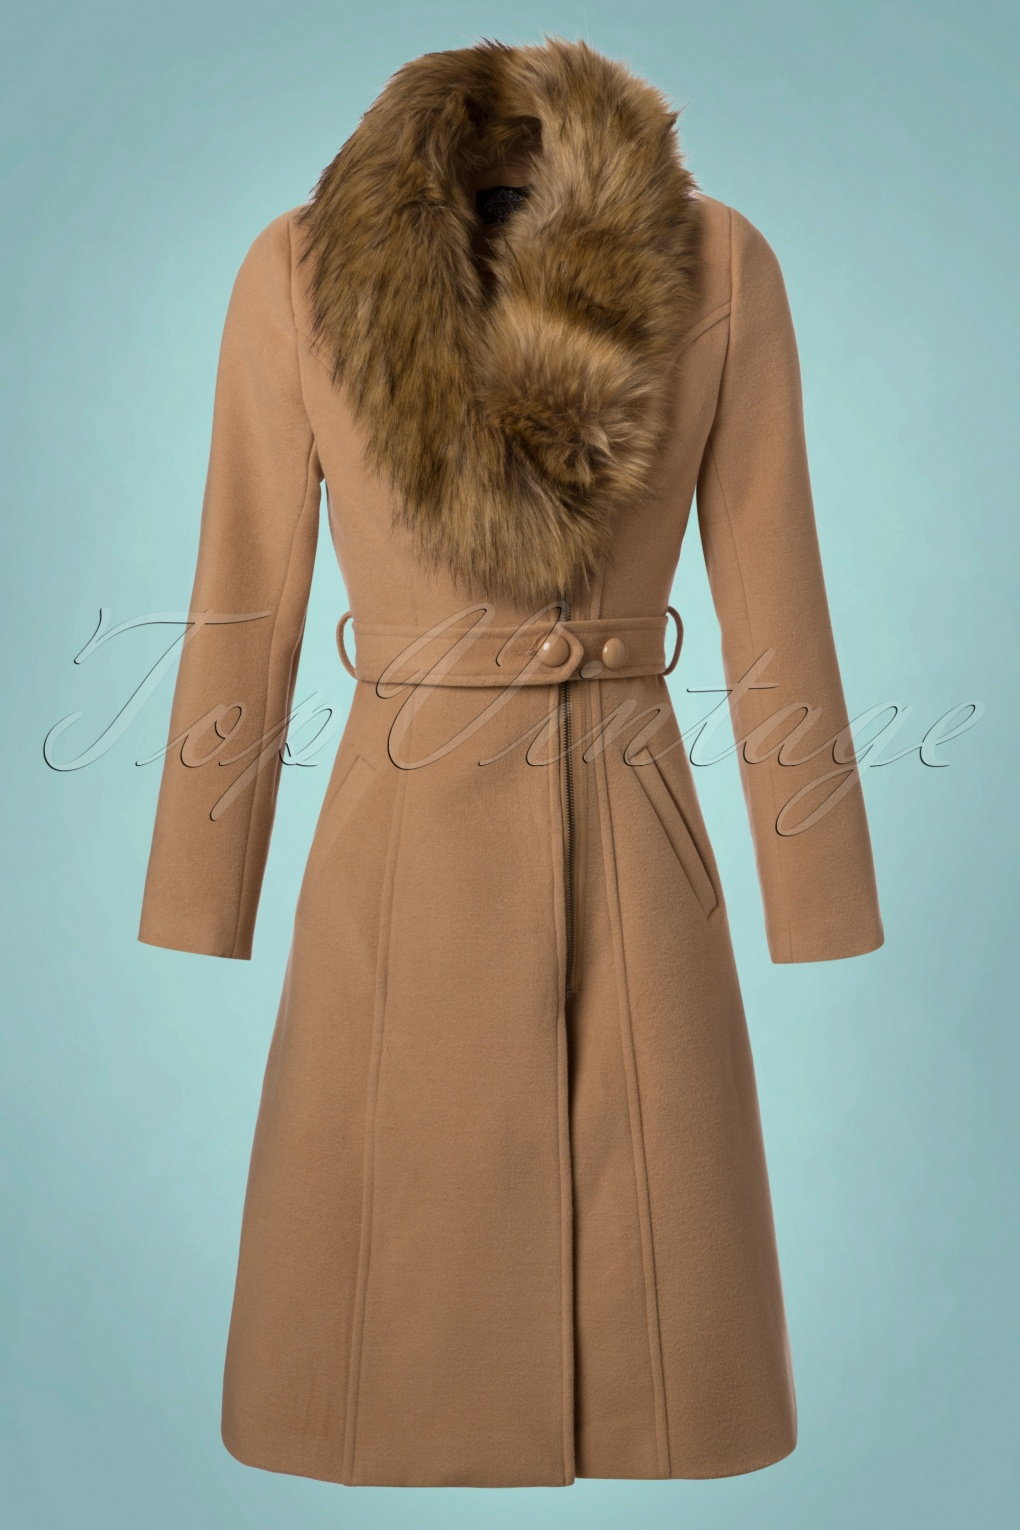 1950s Jackets and Coats | Swing, Pin Up, Rockabilly 50s Fabiola Coat in Beige £96.08 AT vintagedancer.com